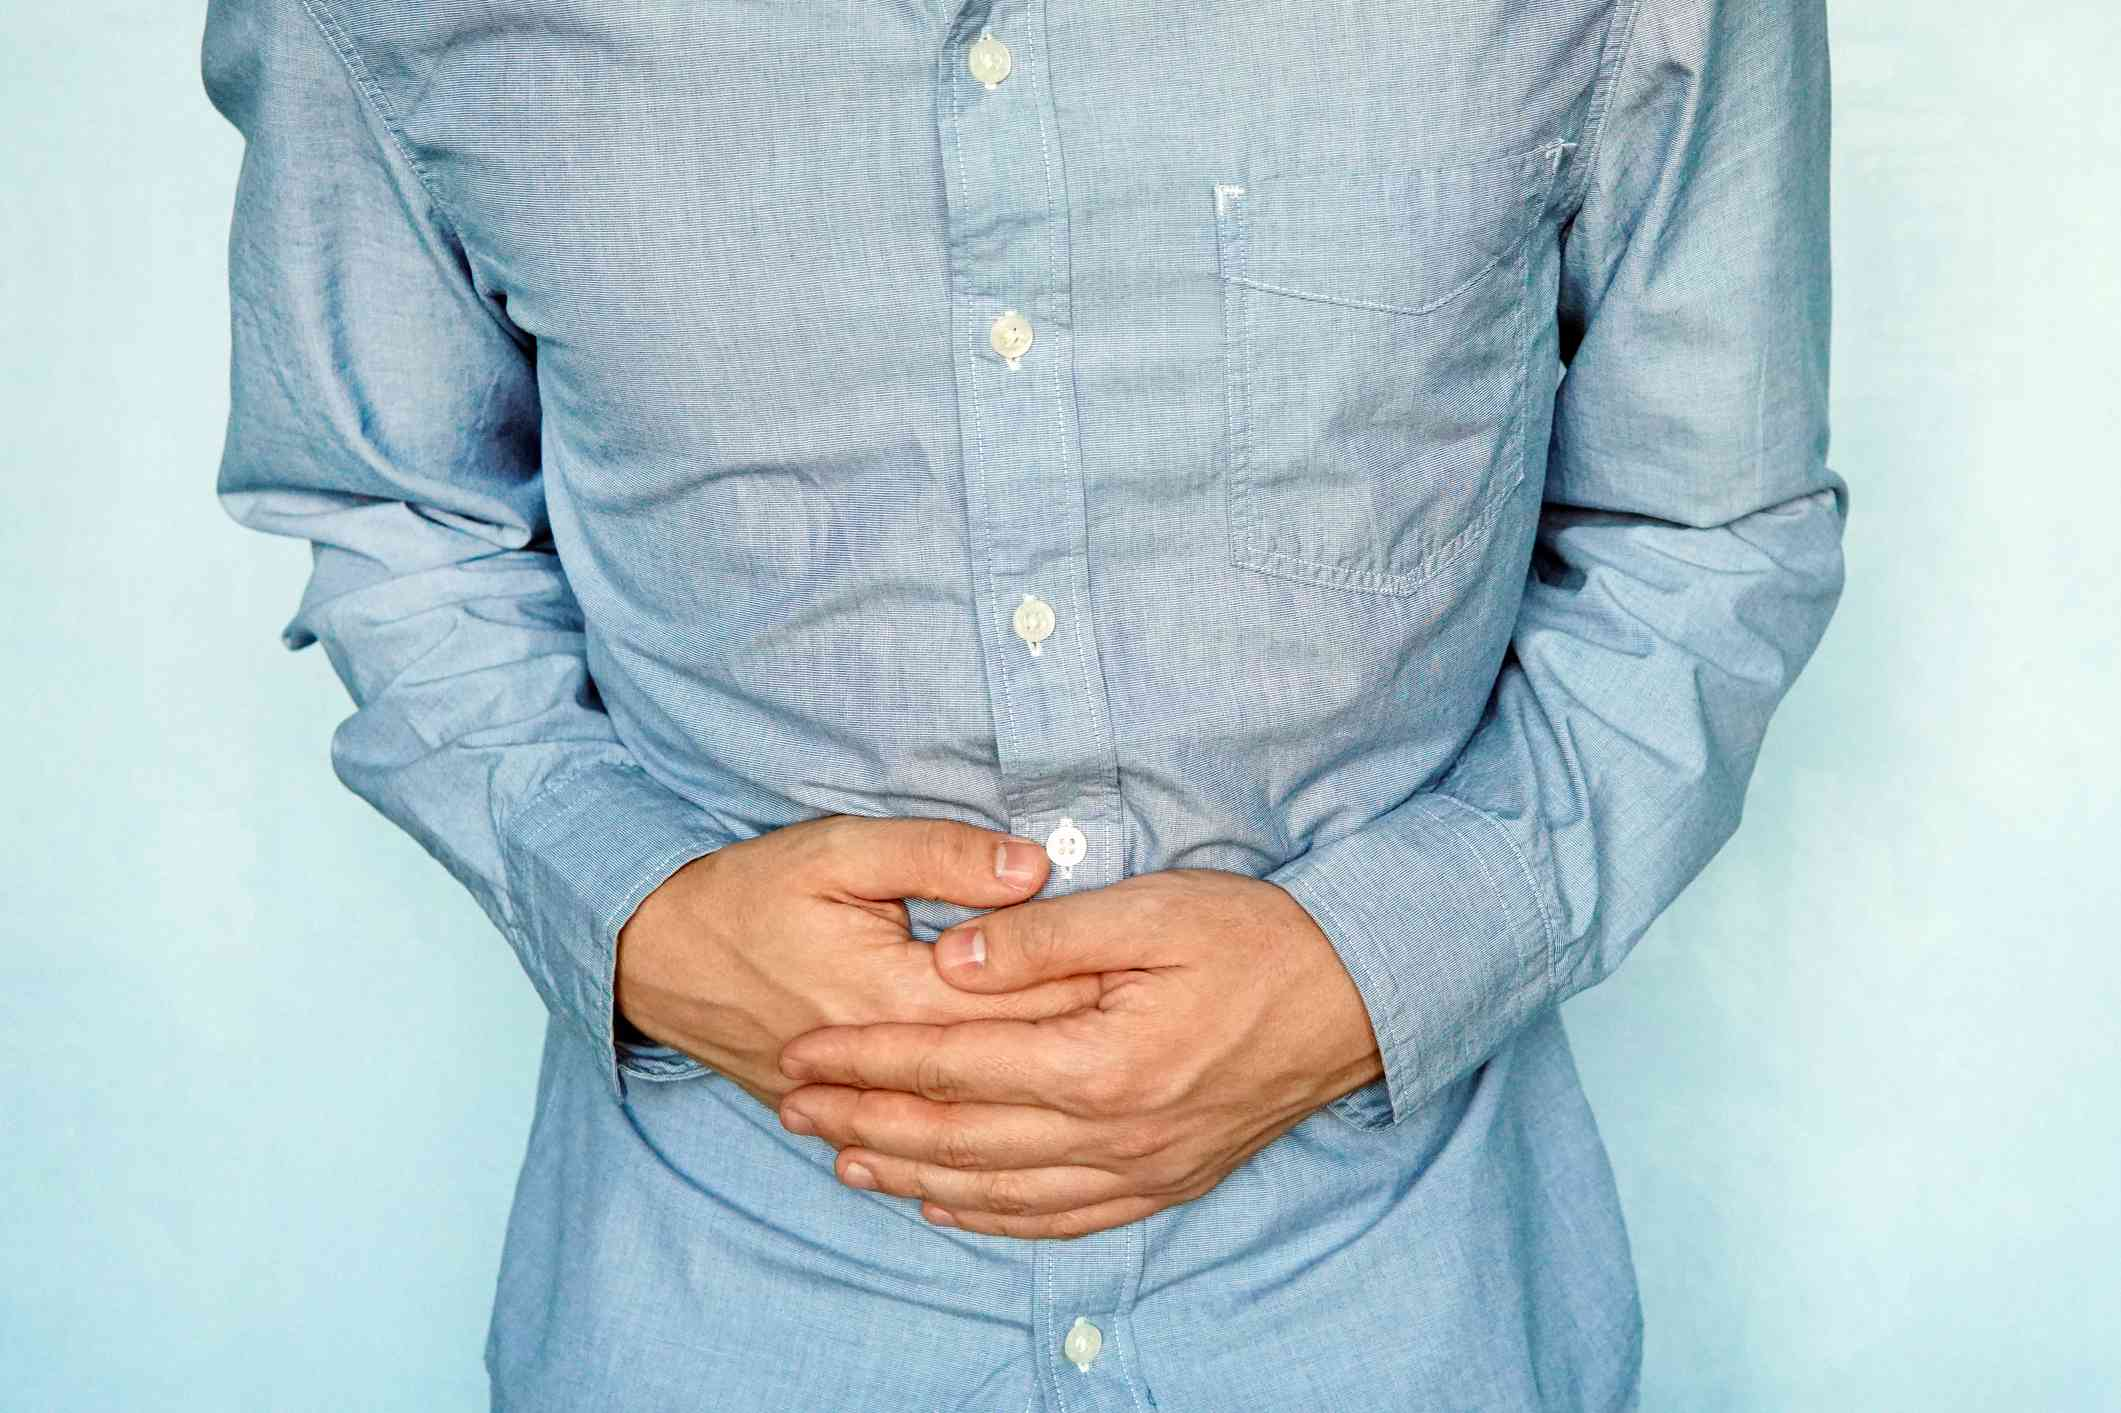 Man holding his stomach in pain